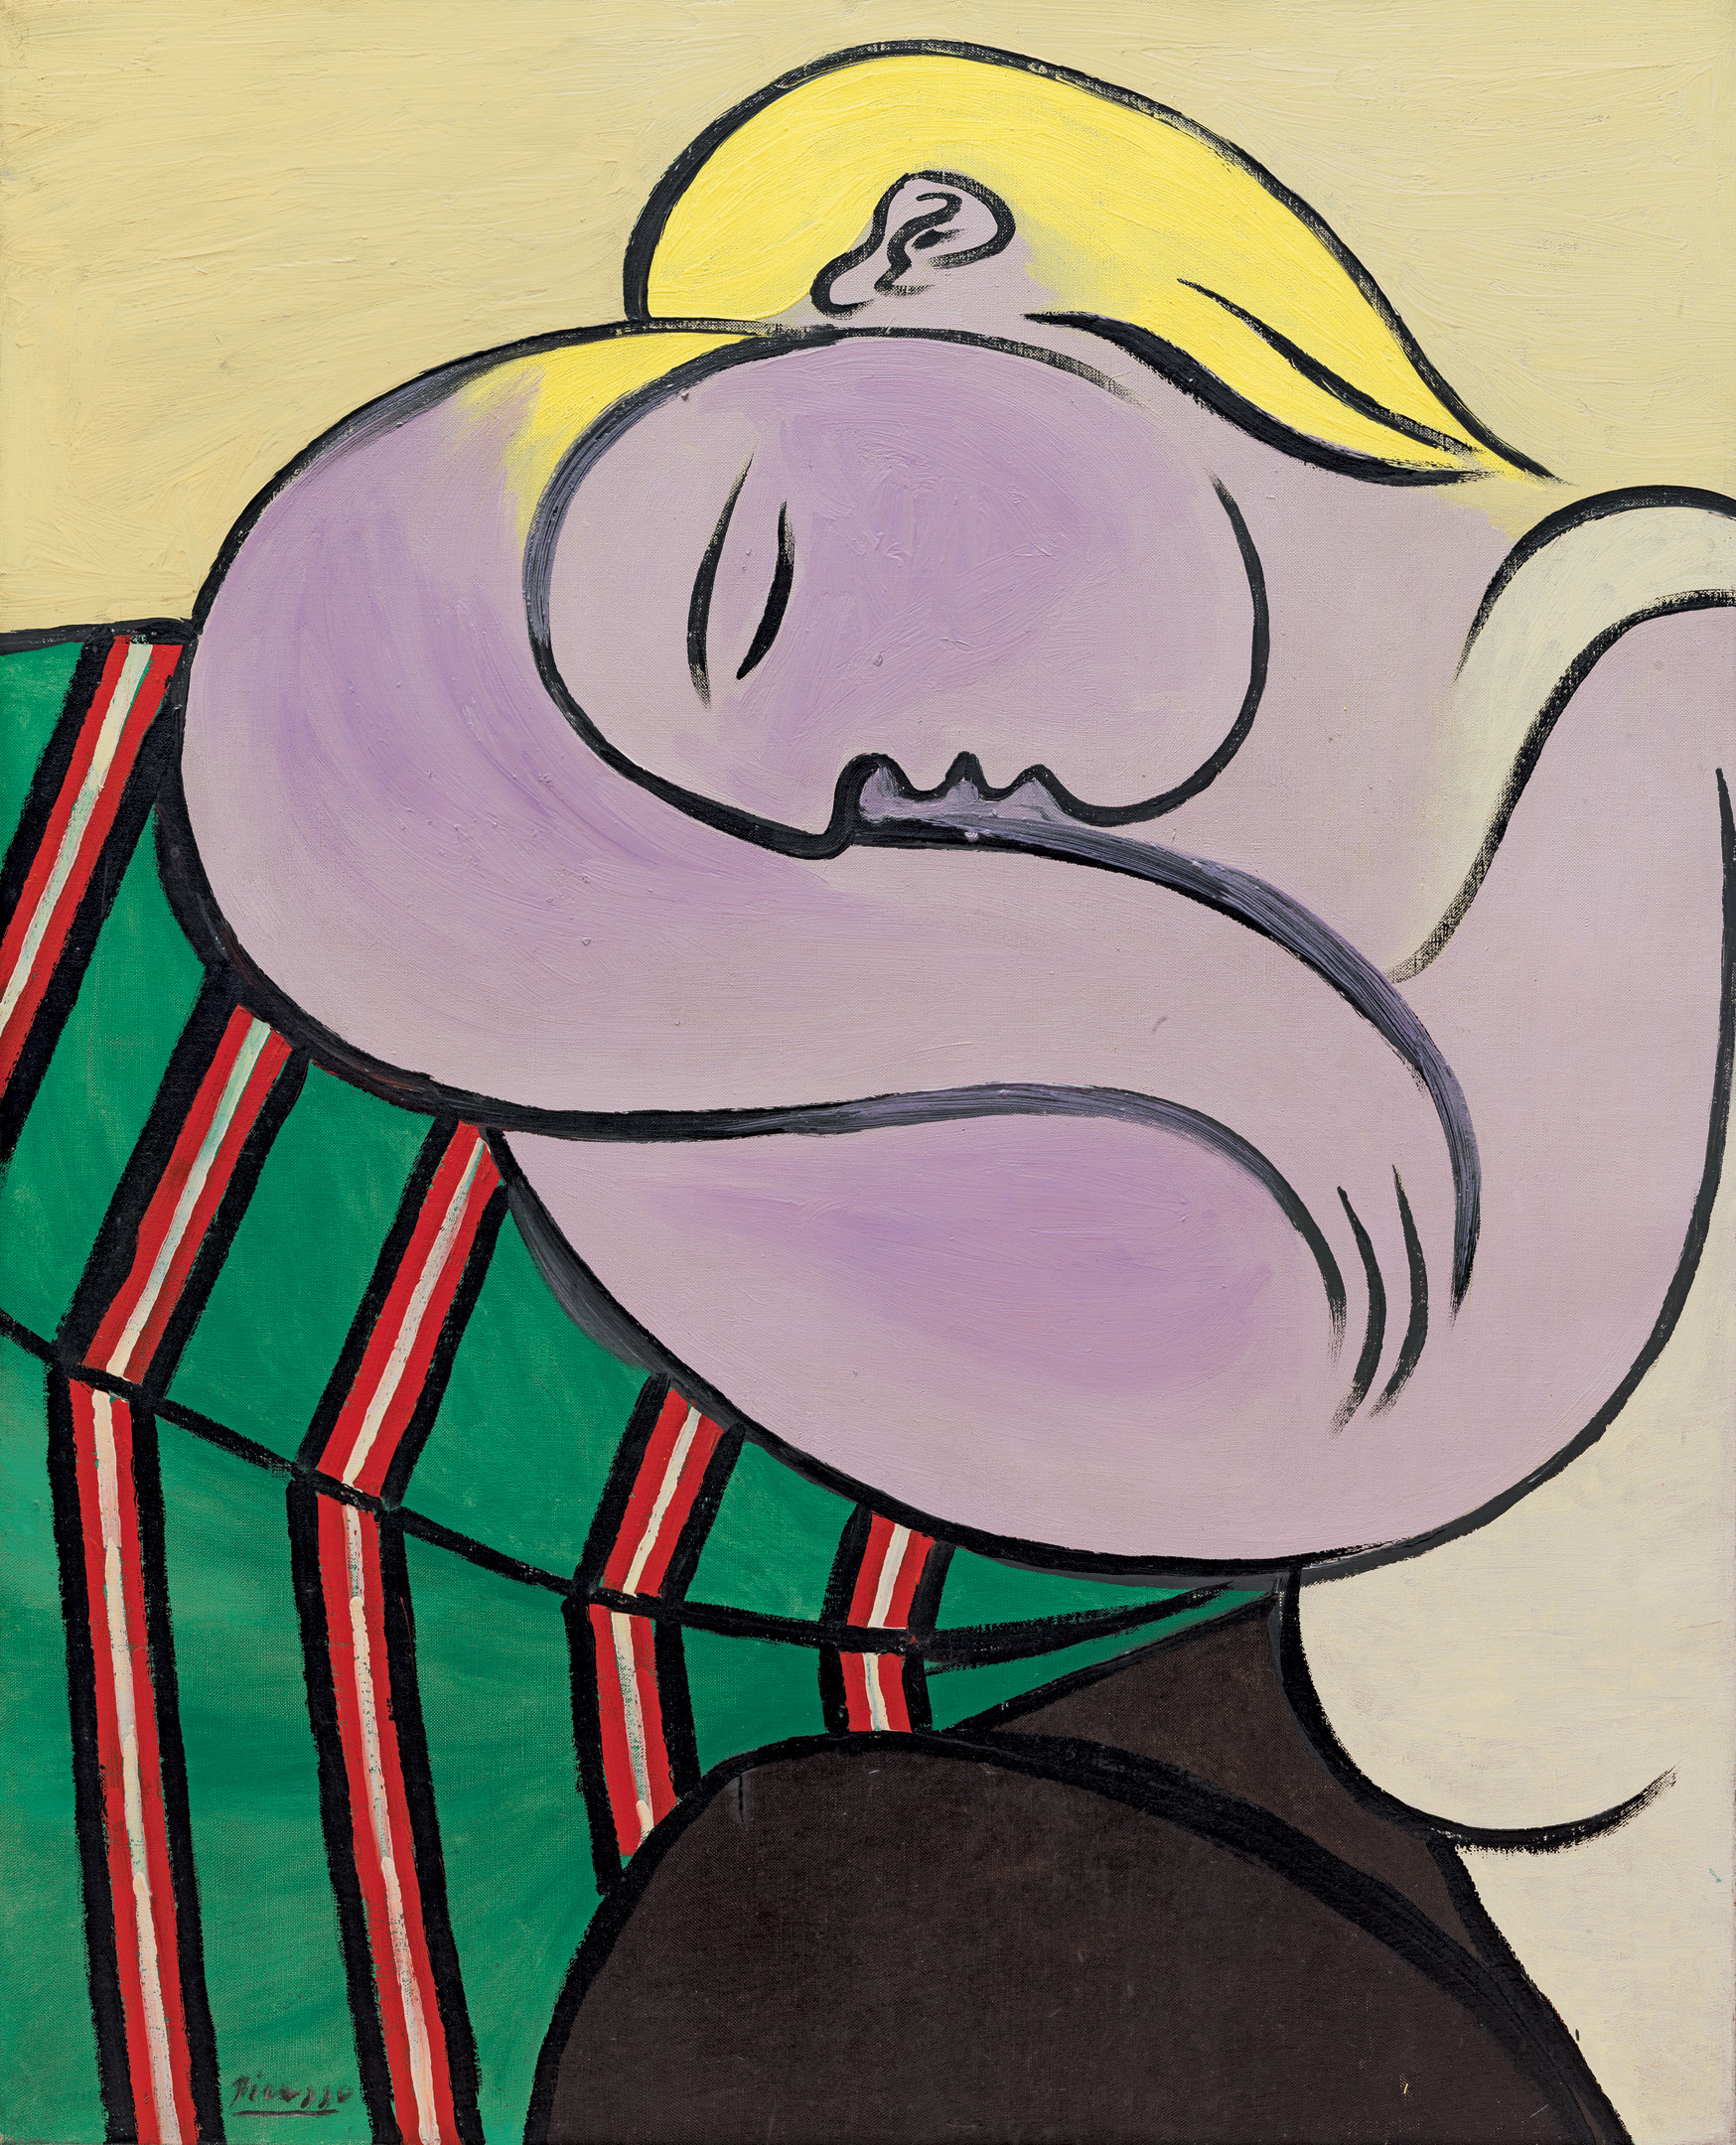 Woman with Yellow Hair (1931), by Pablo Picasso. Oil on canvas, 100 x 81 cm. Solomon R. Guggenheim Museum, New York. © 2017 Estate of Pablo Picasso/Artists Rights Society (ARS), New York.